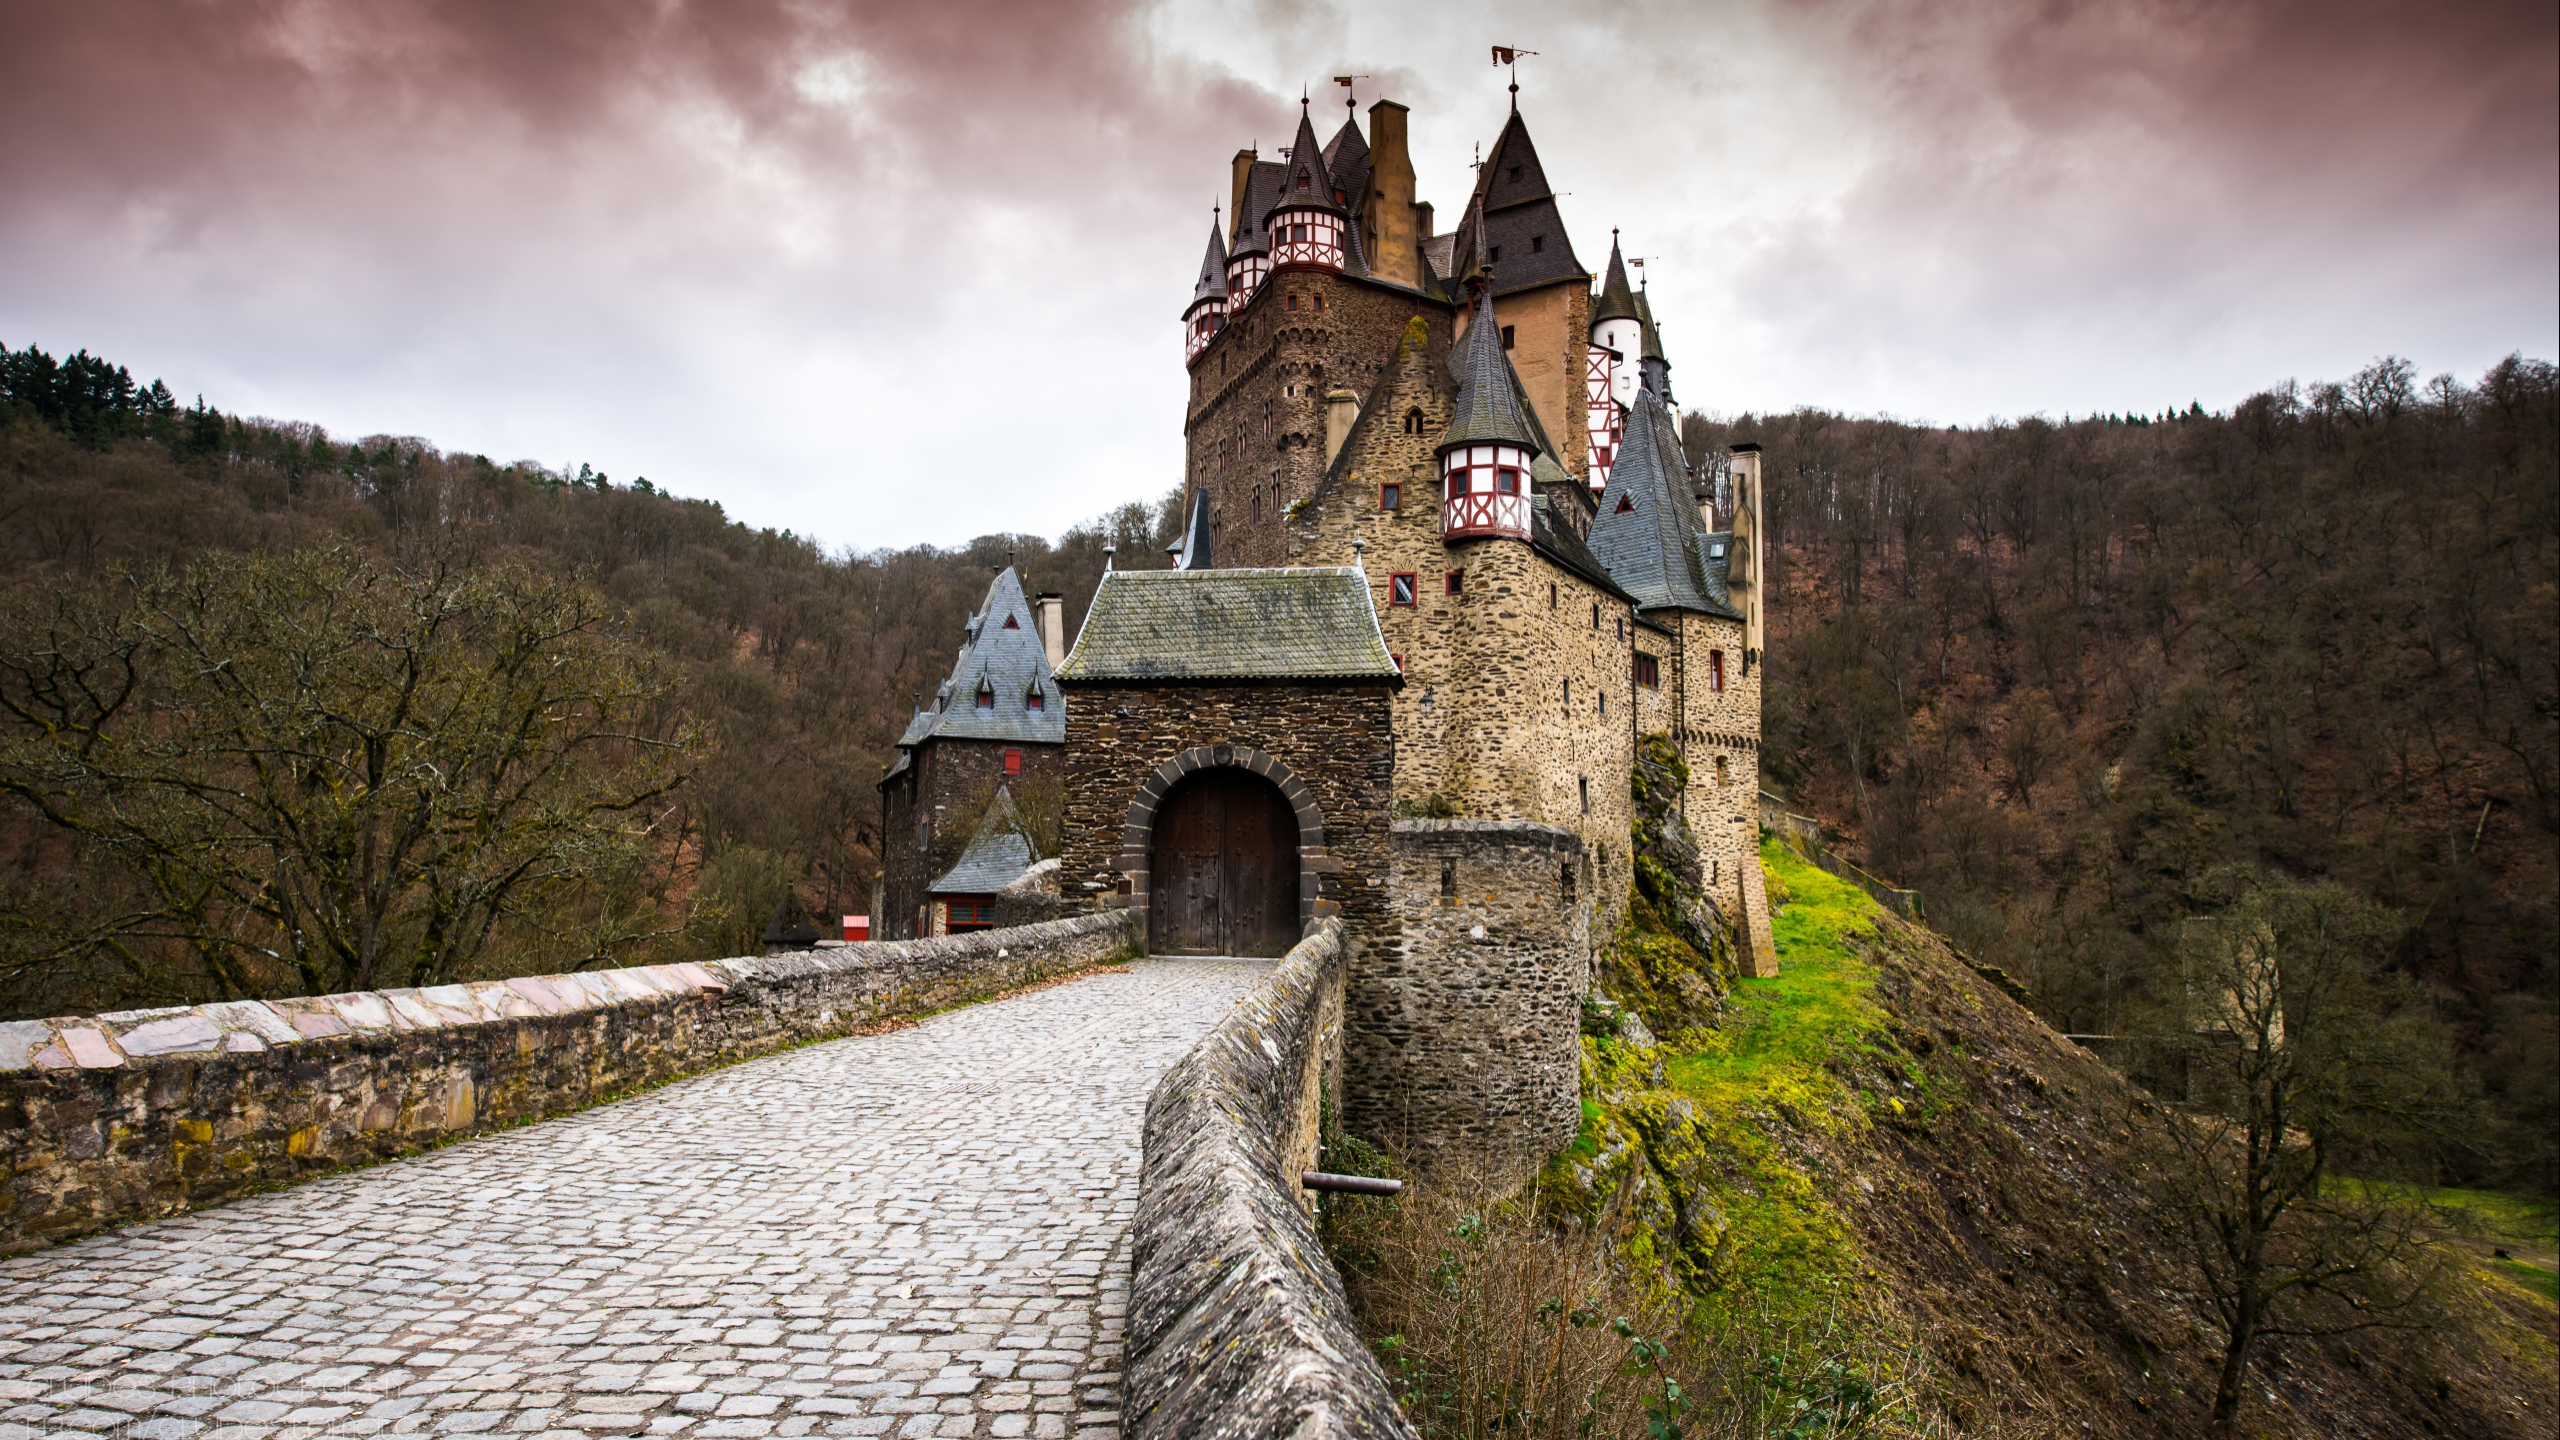 31 Eltz Castle Hd Wallpapers Backgrounds Wallpaper Abyss